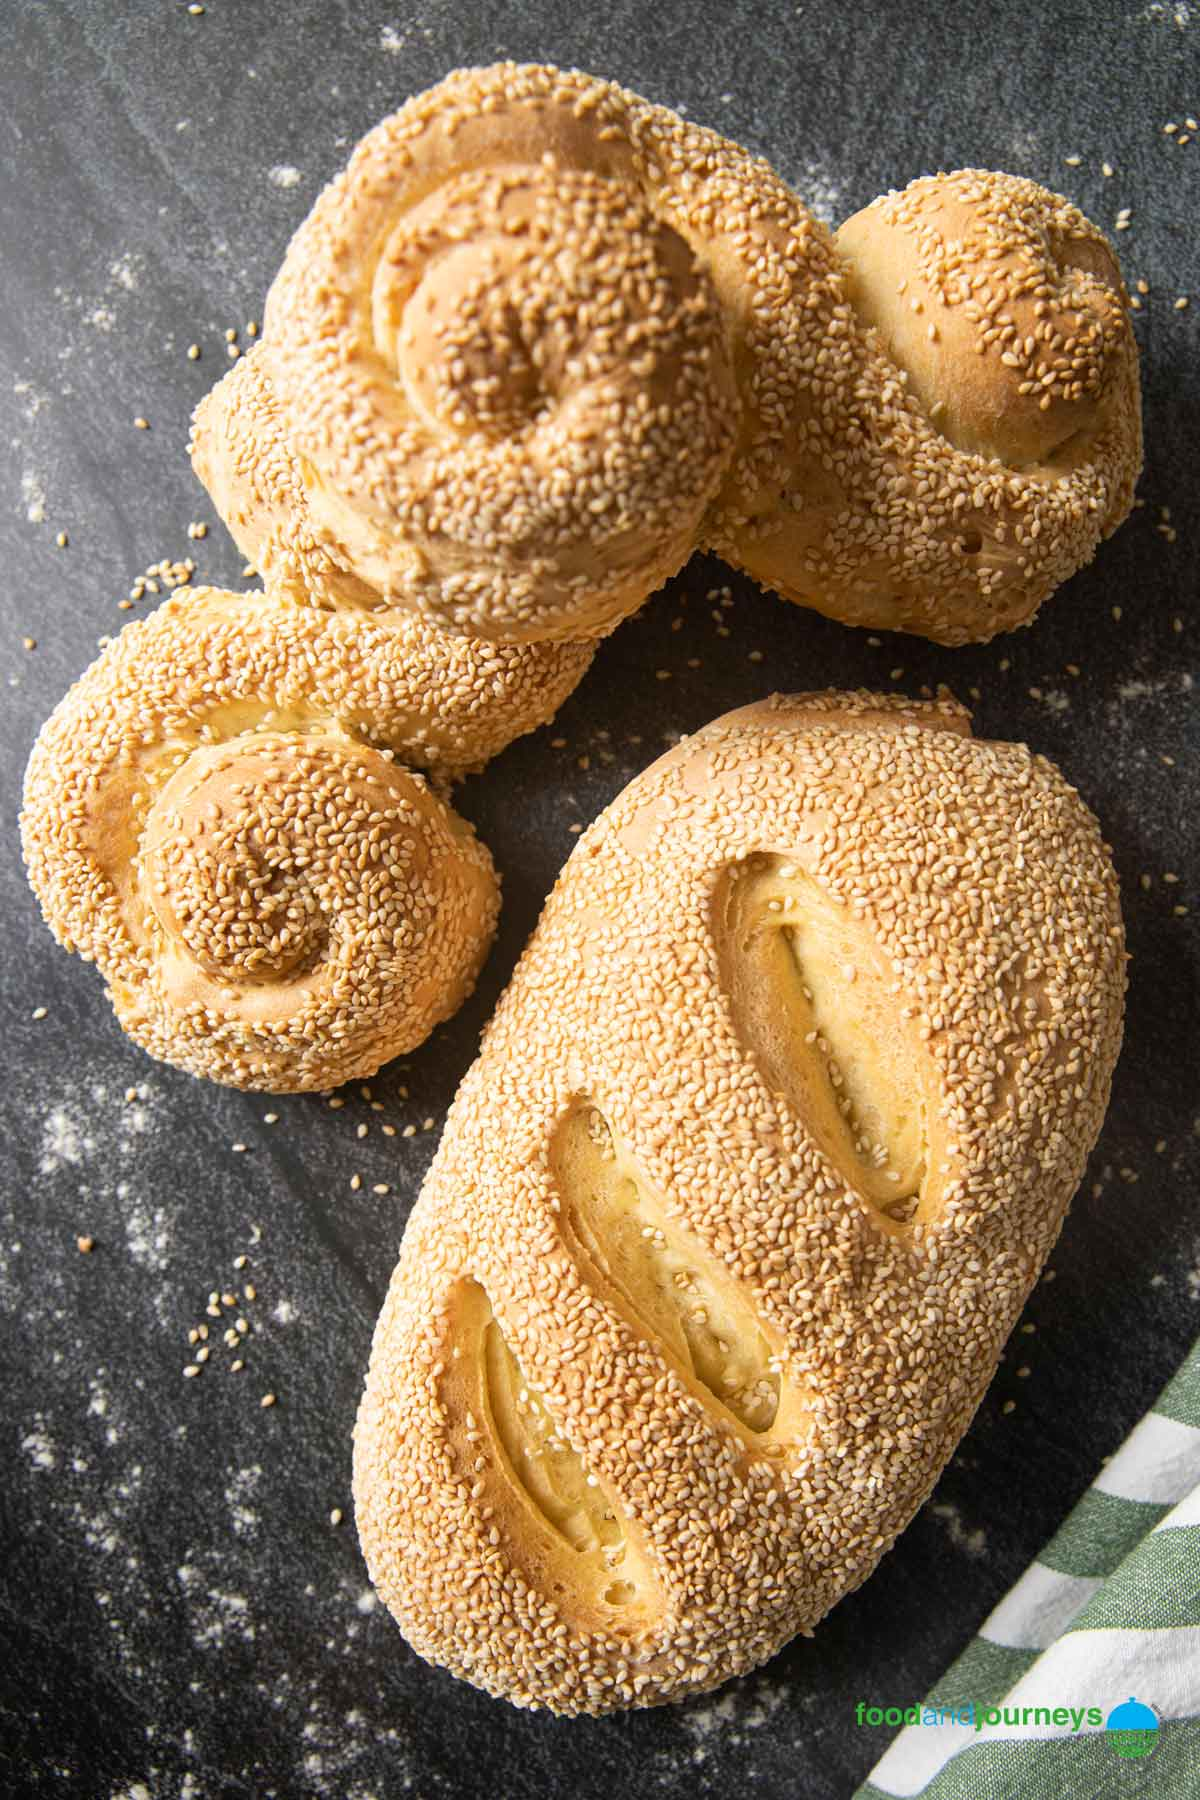 An image showing freshly baked Pane Siciliano, one a loaf and two in their traditional shapes.